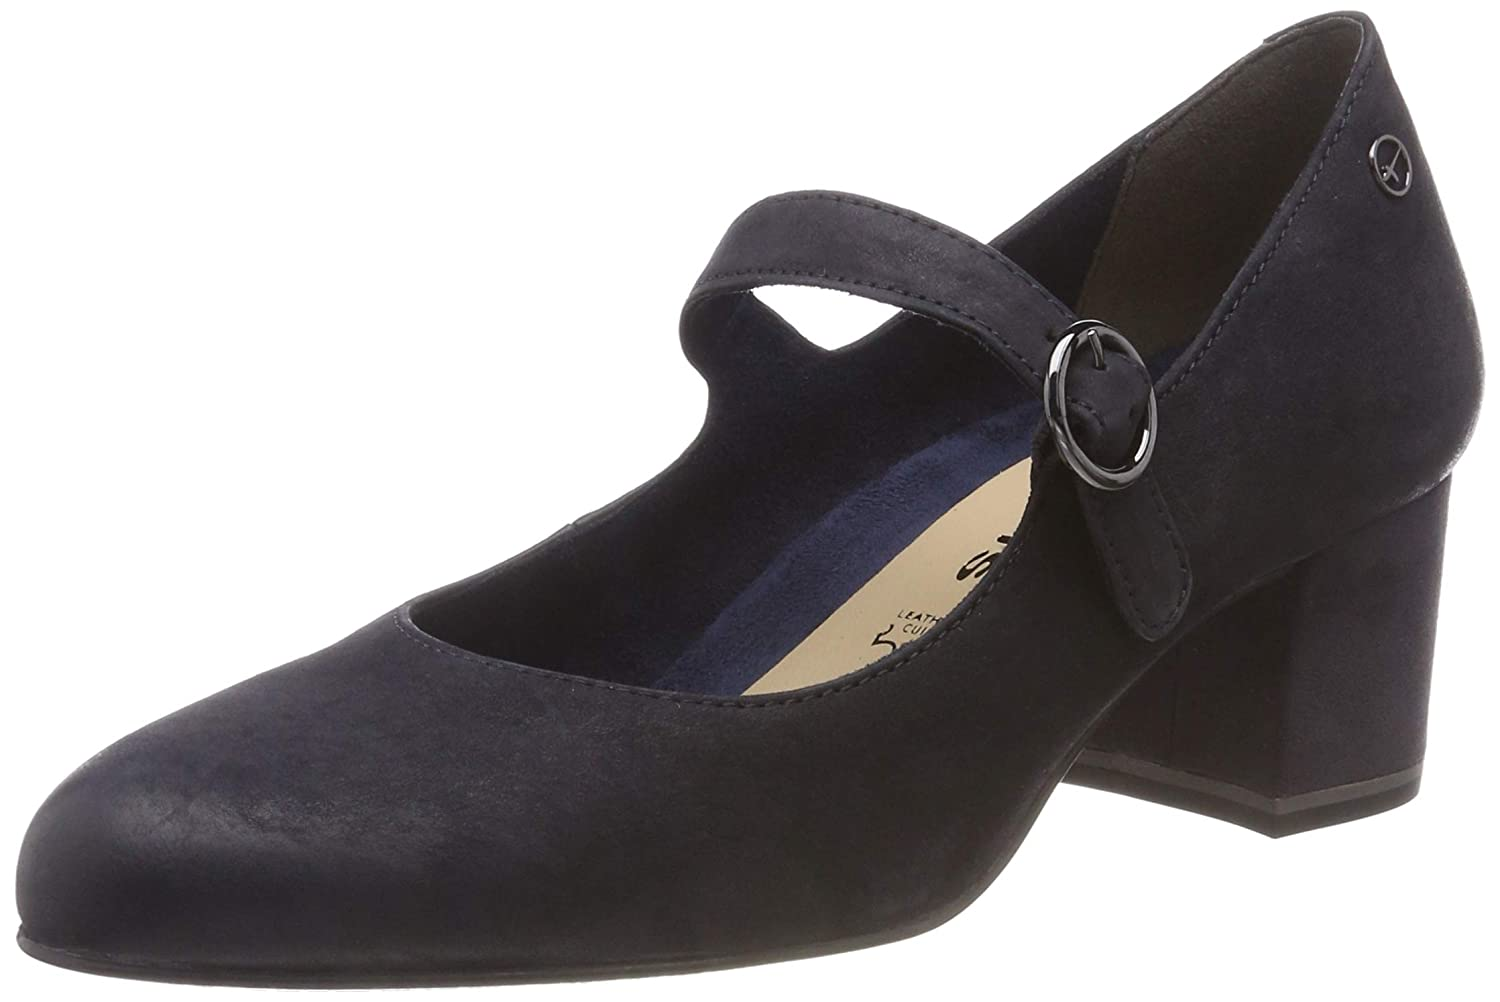 Blau (Navy Nubuc 827) Tamaris Damen 24401-21 Pumps